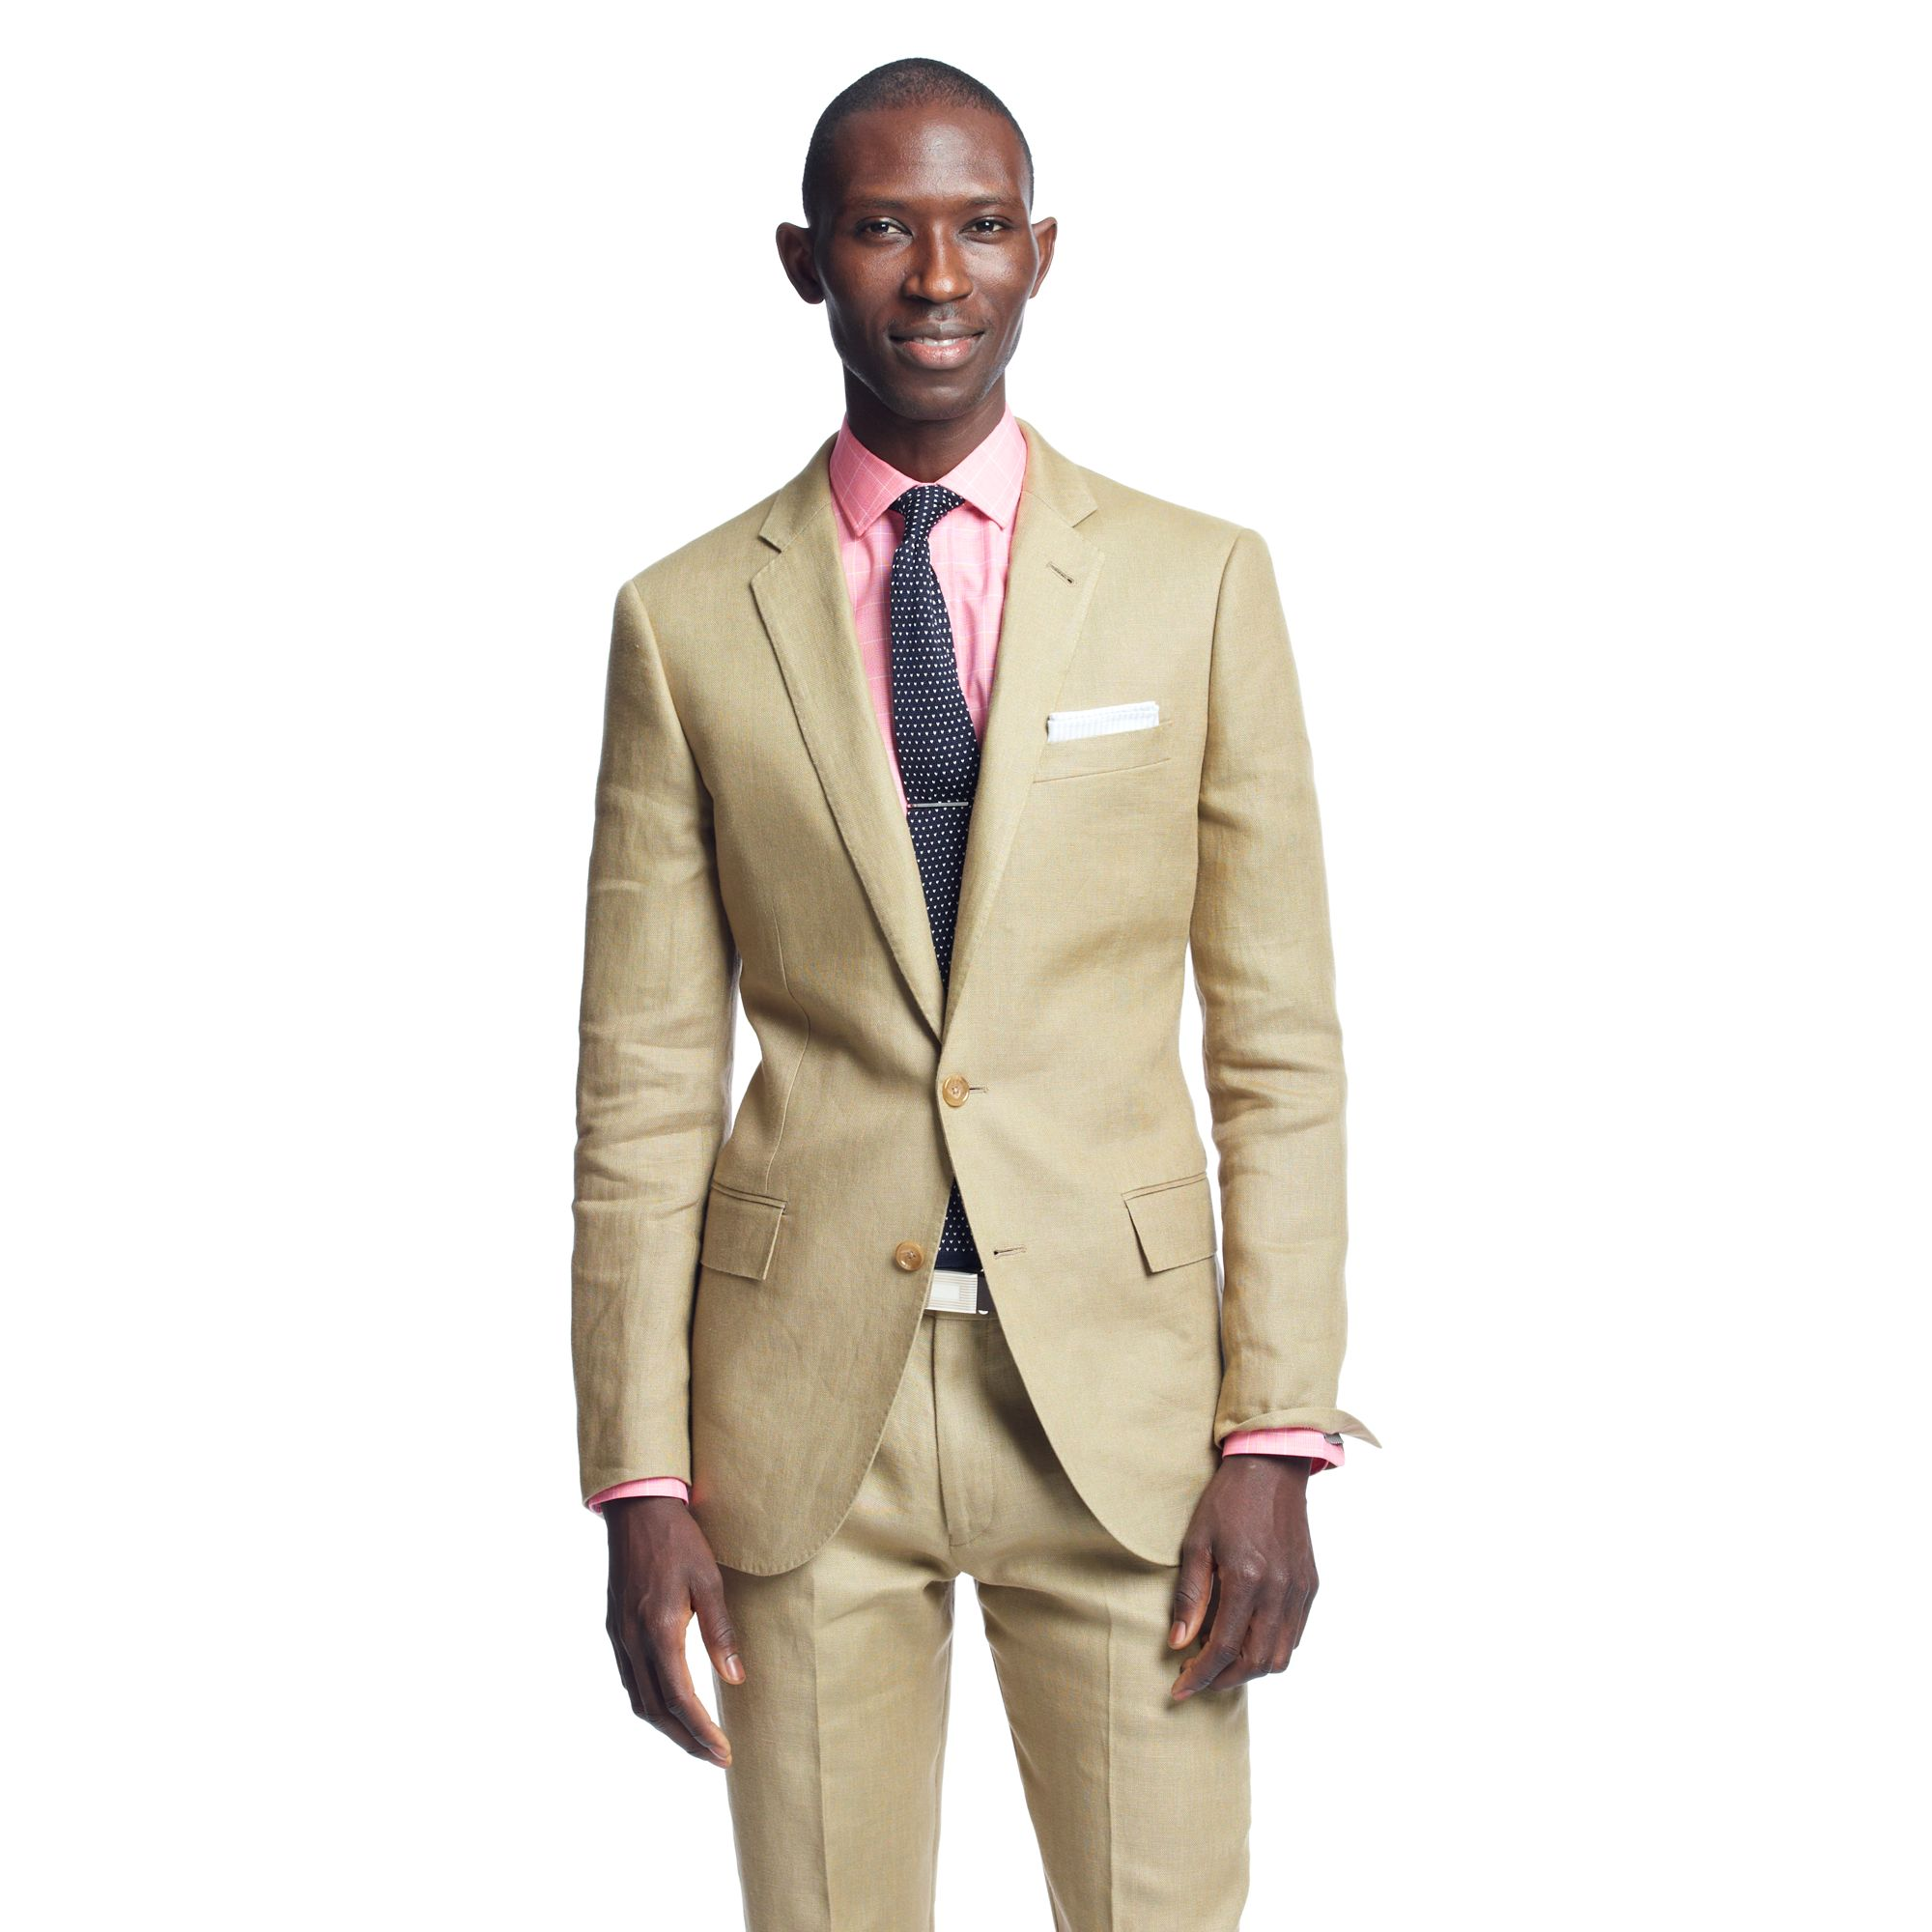 511f32a902e Lyst - J.Crew Ludlow Classic Suit Pant In Irish Linen in Natural for Men